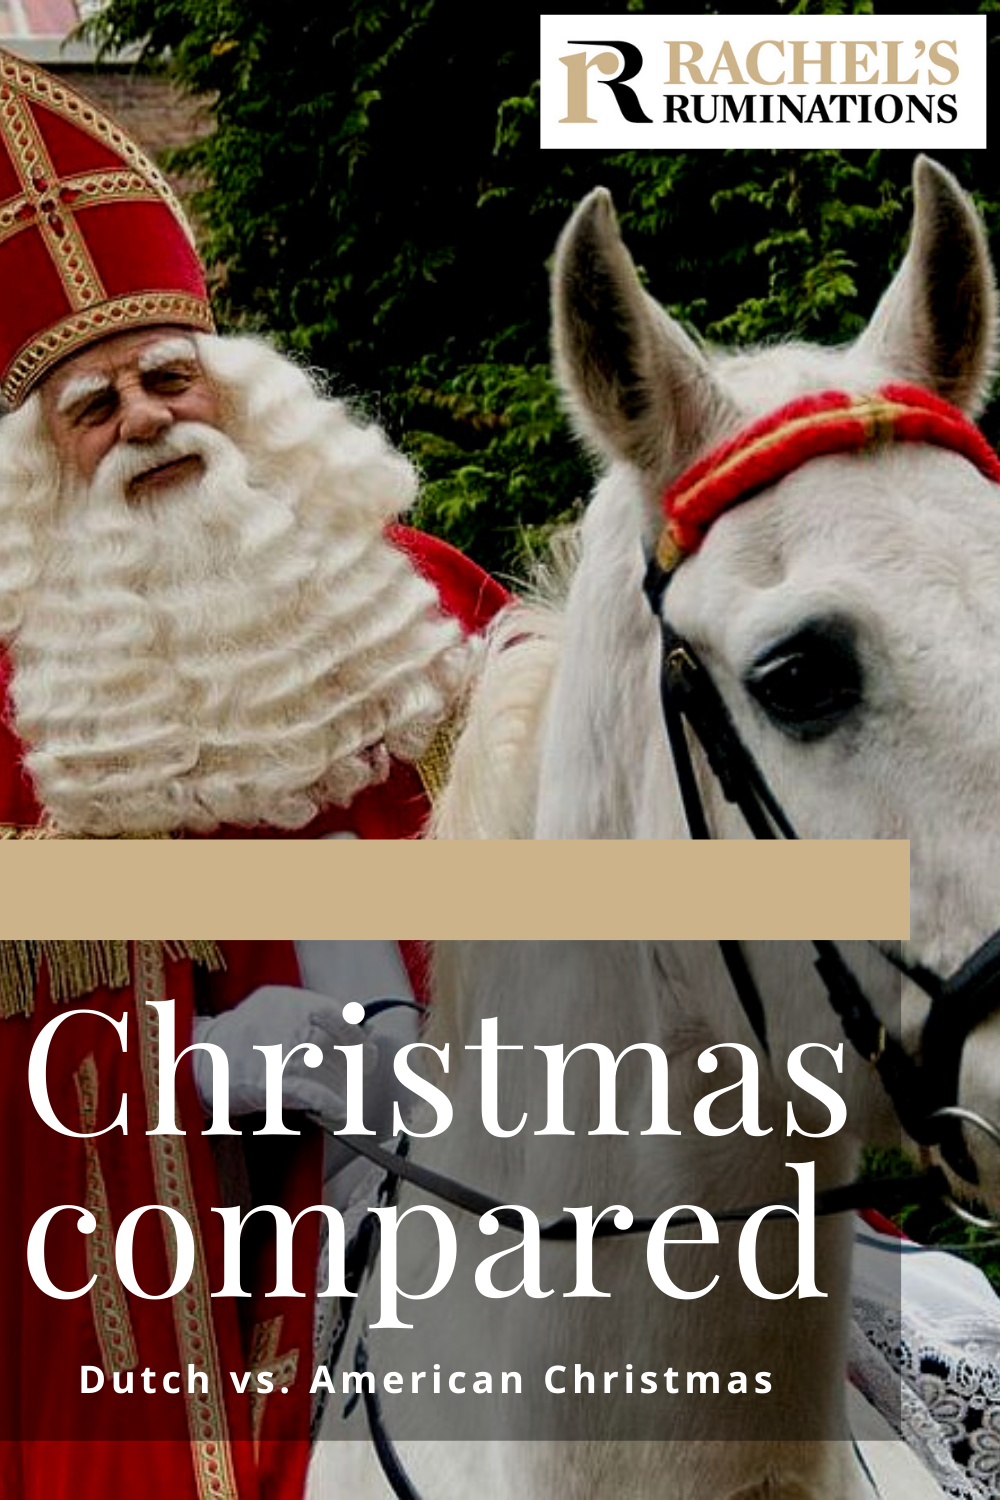 Christmas Compared via @rachelsruminations